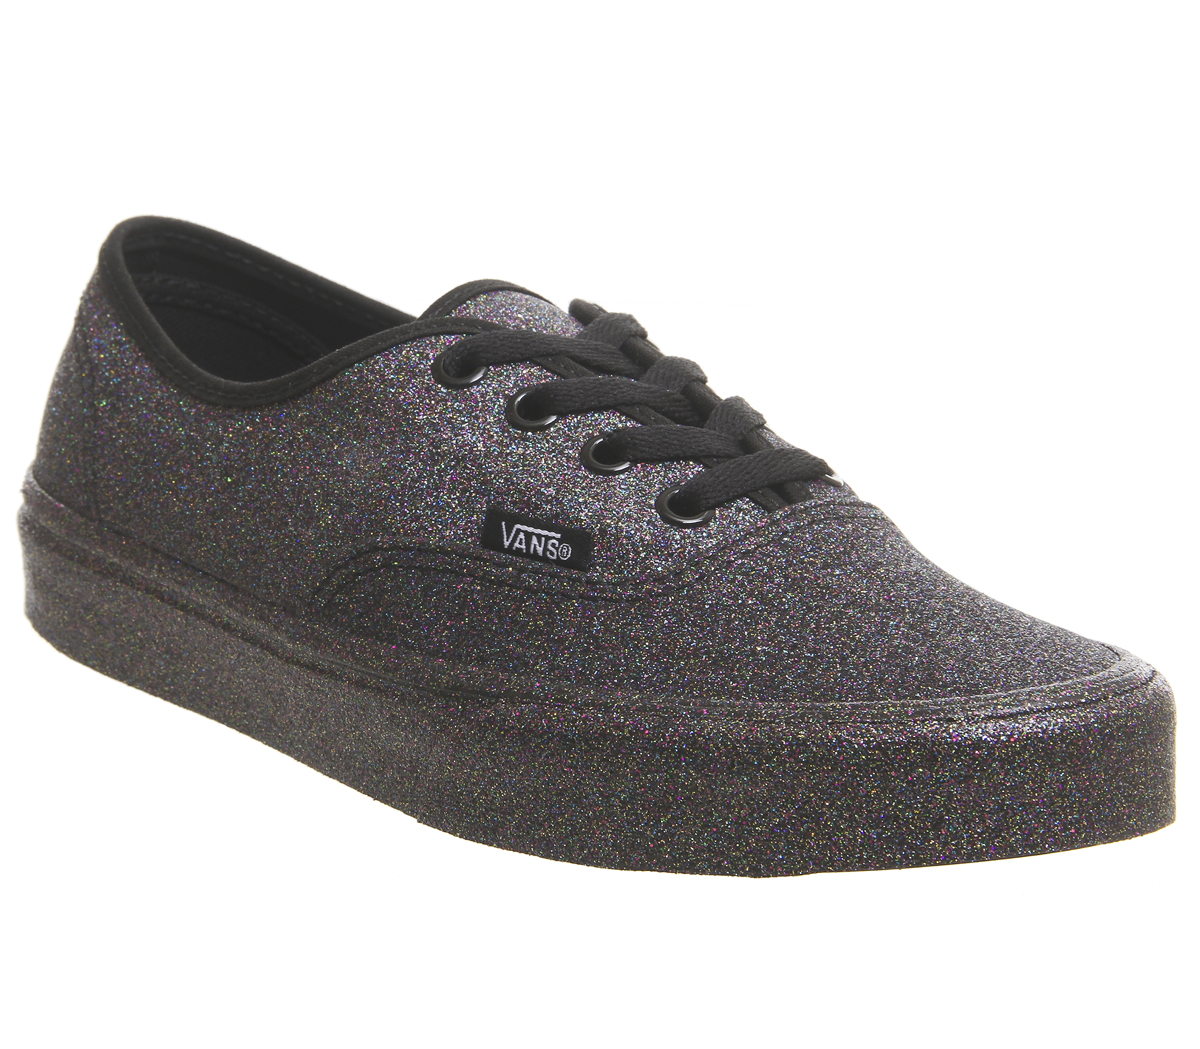 fe7229cd9ed0 Sentinel Womens Vans Authentic Trainers Black Black Rainbow Glitter  Trainers Shoes